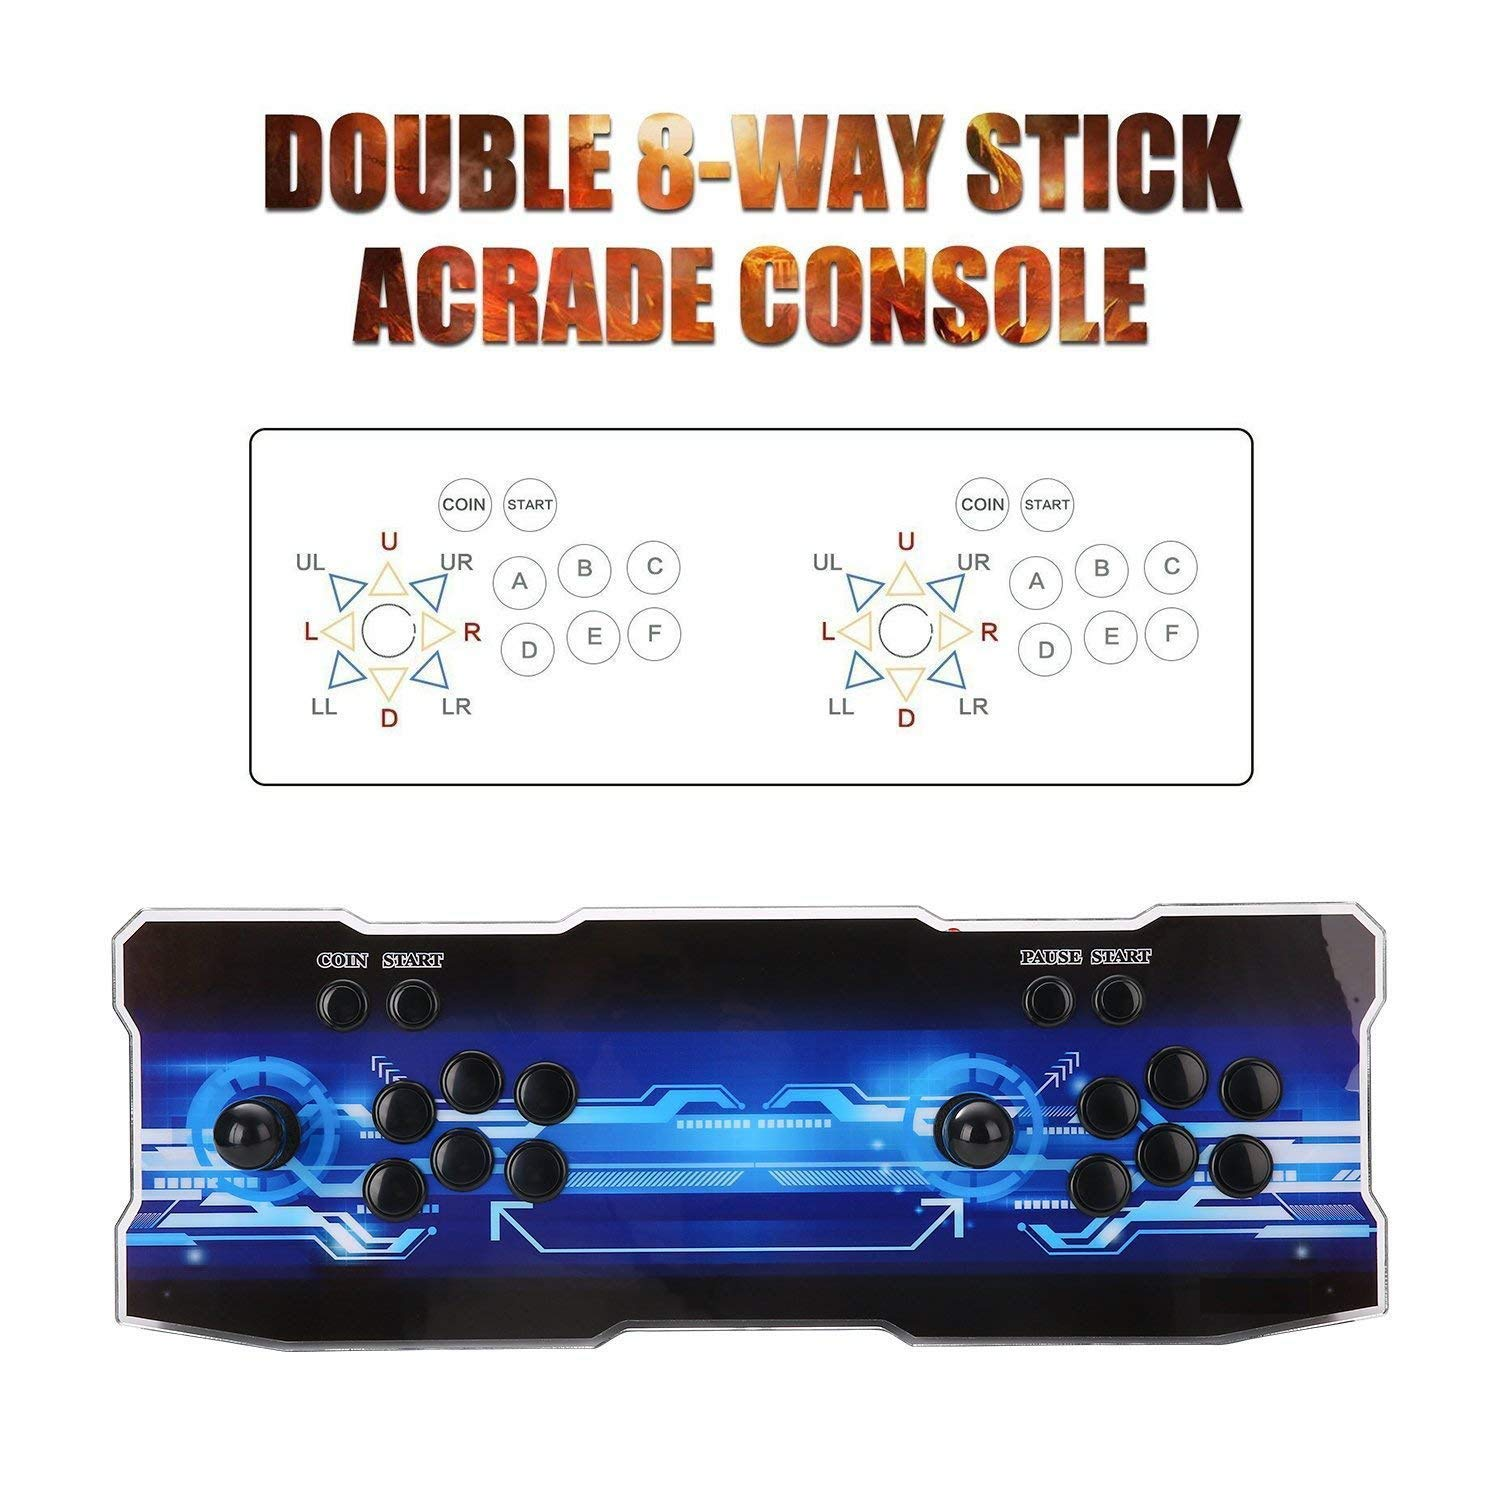 SeeKool Newest 3D Pandora X Arcade Game Console, 1920x1080 Full HD 4 Players Max Arcade Machine with 2200 Games, Support Extended TF Card& USB Disk to Enjoy More Games PC / Laptop / TV / PS3 by SeeKool (Image #7)